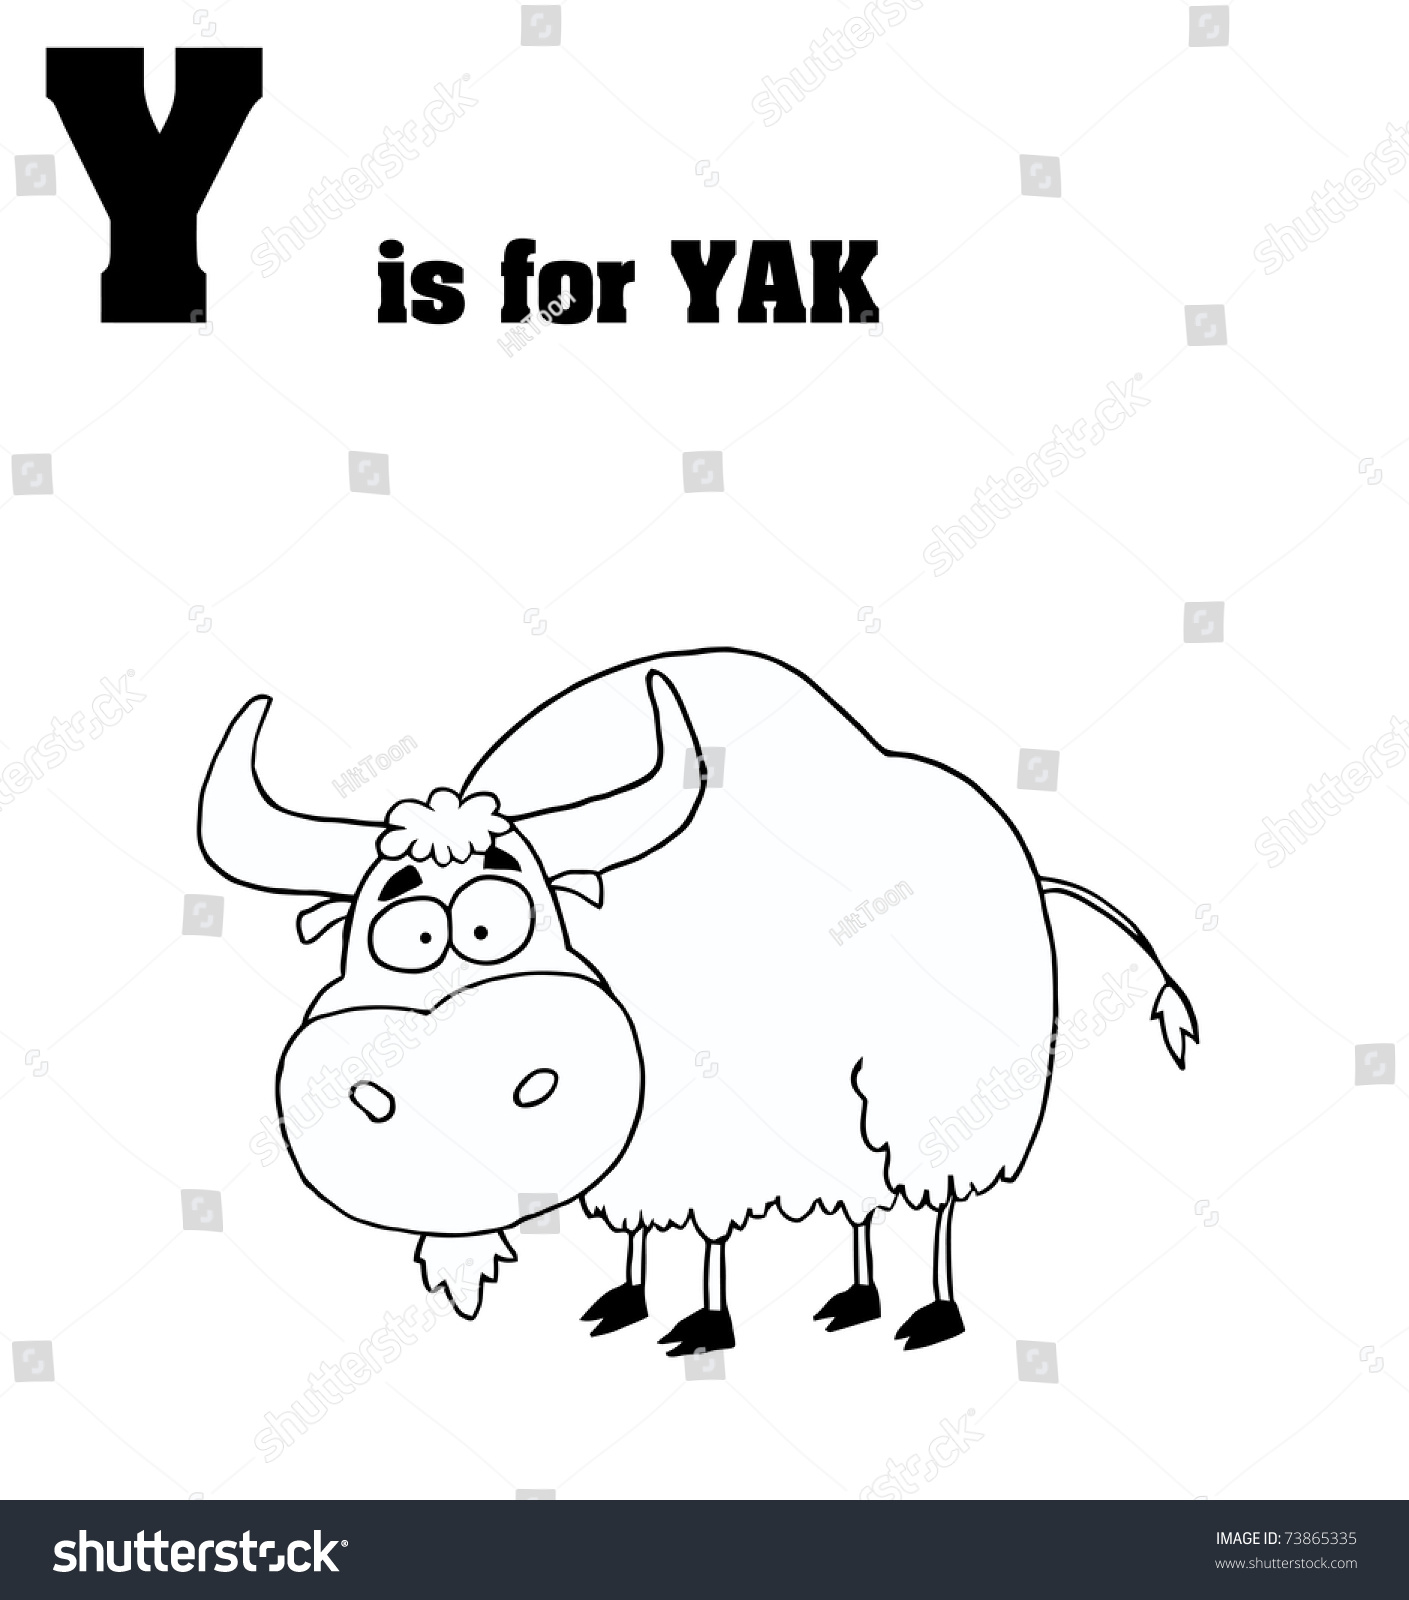 Y Yak Text Stock Illustration